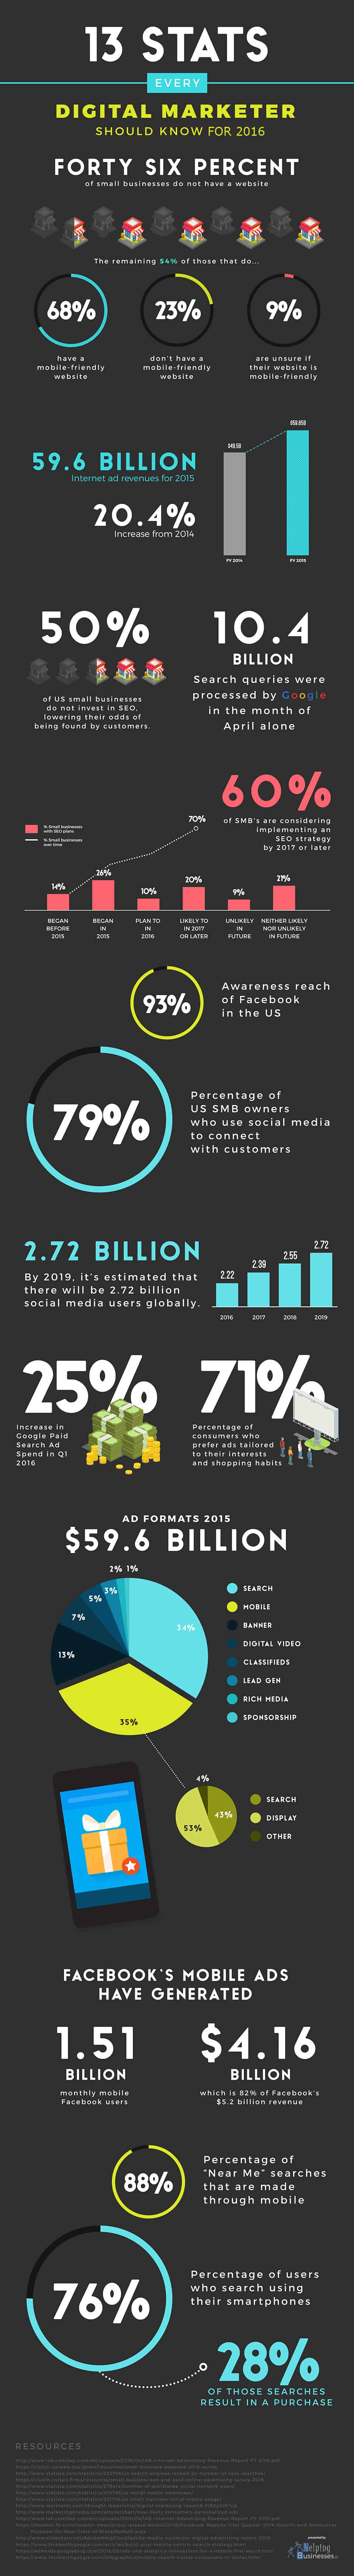 13 Stats Every Digital Marketer Should Know